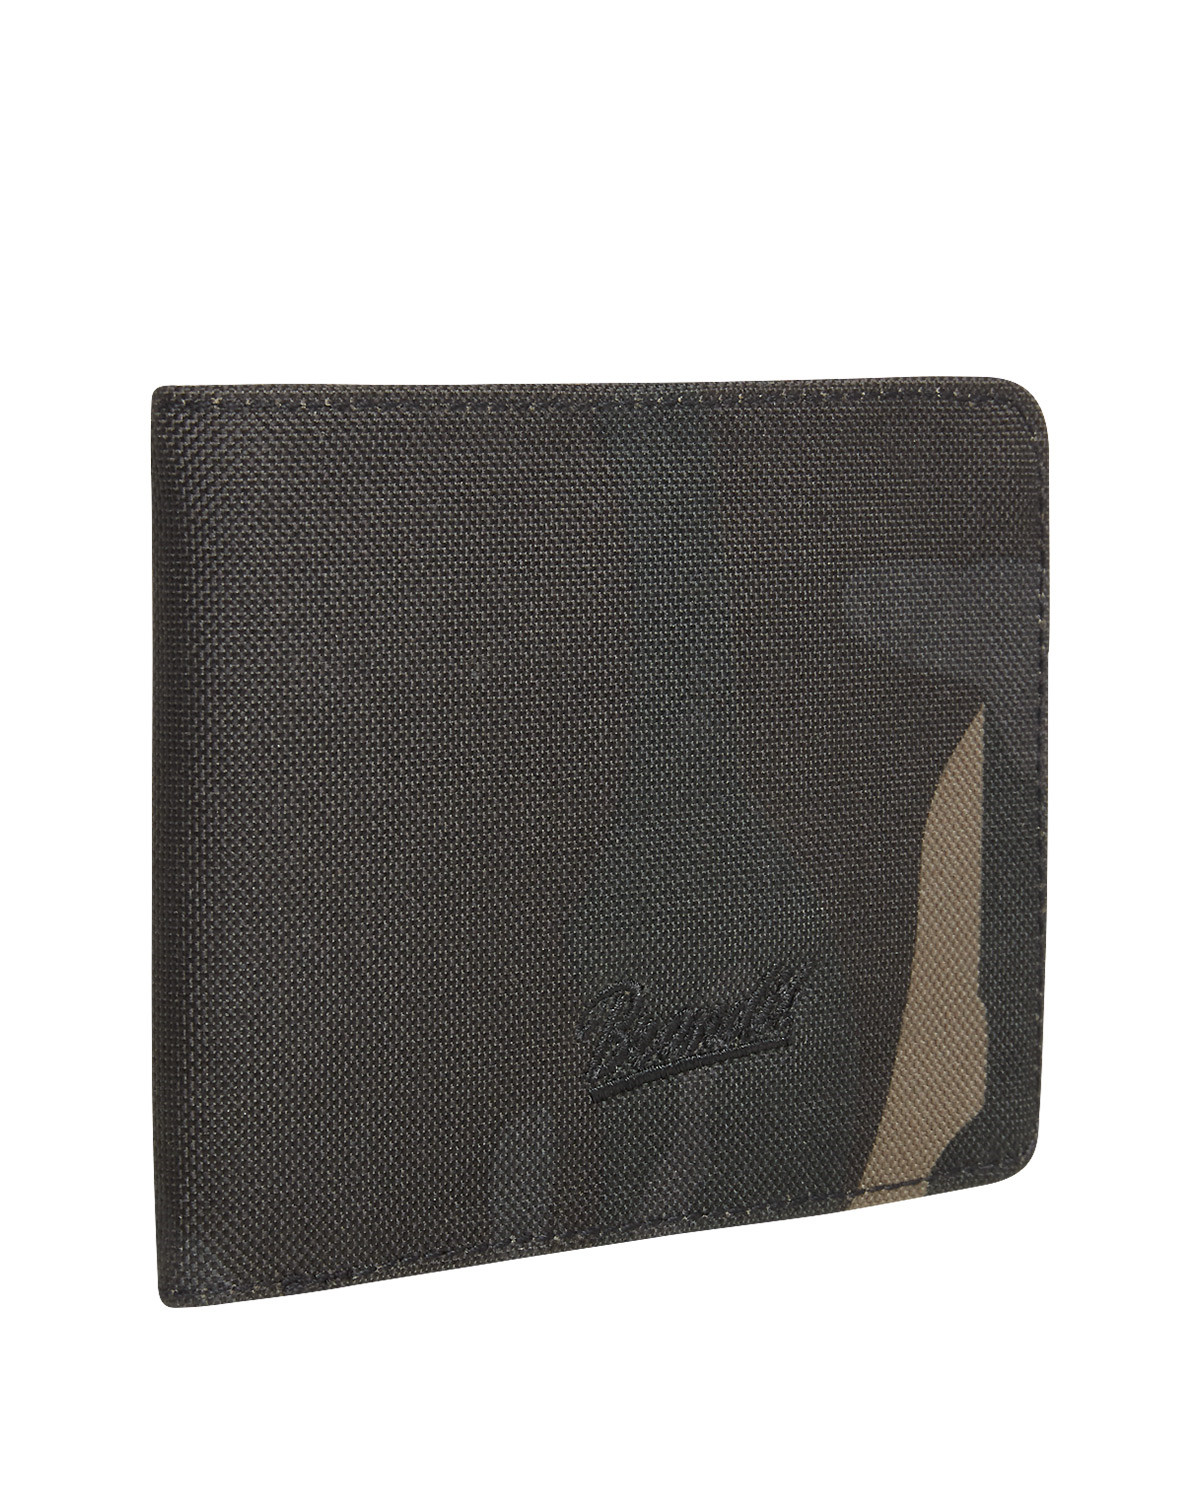 Image of   Brandit Wallet Four (Dark Camo, One Size)